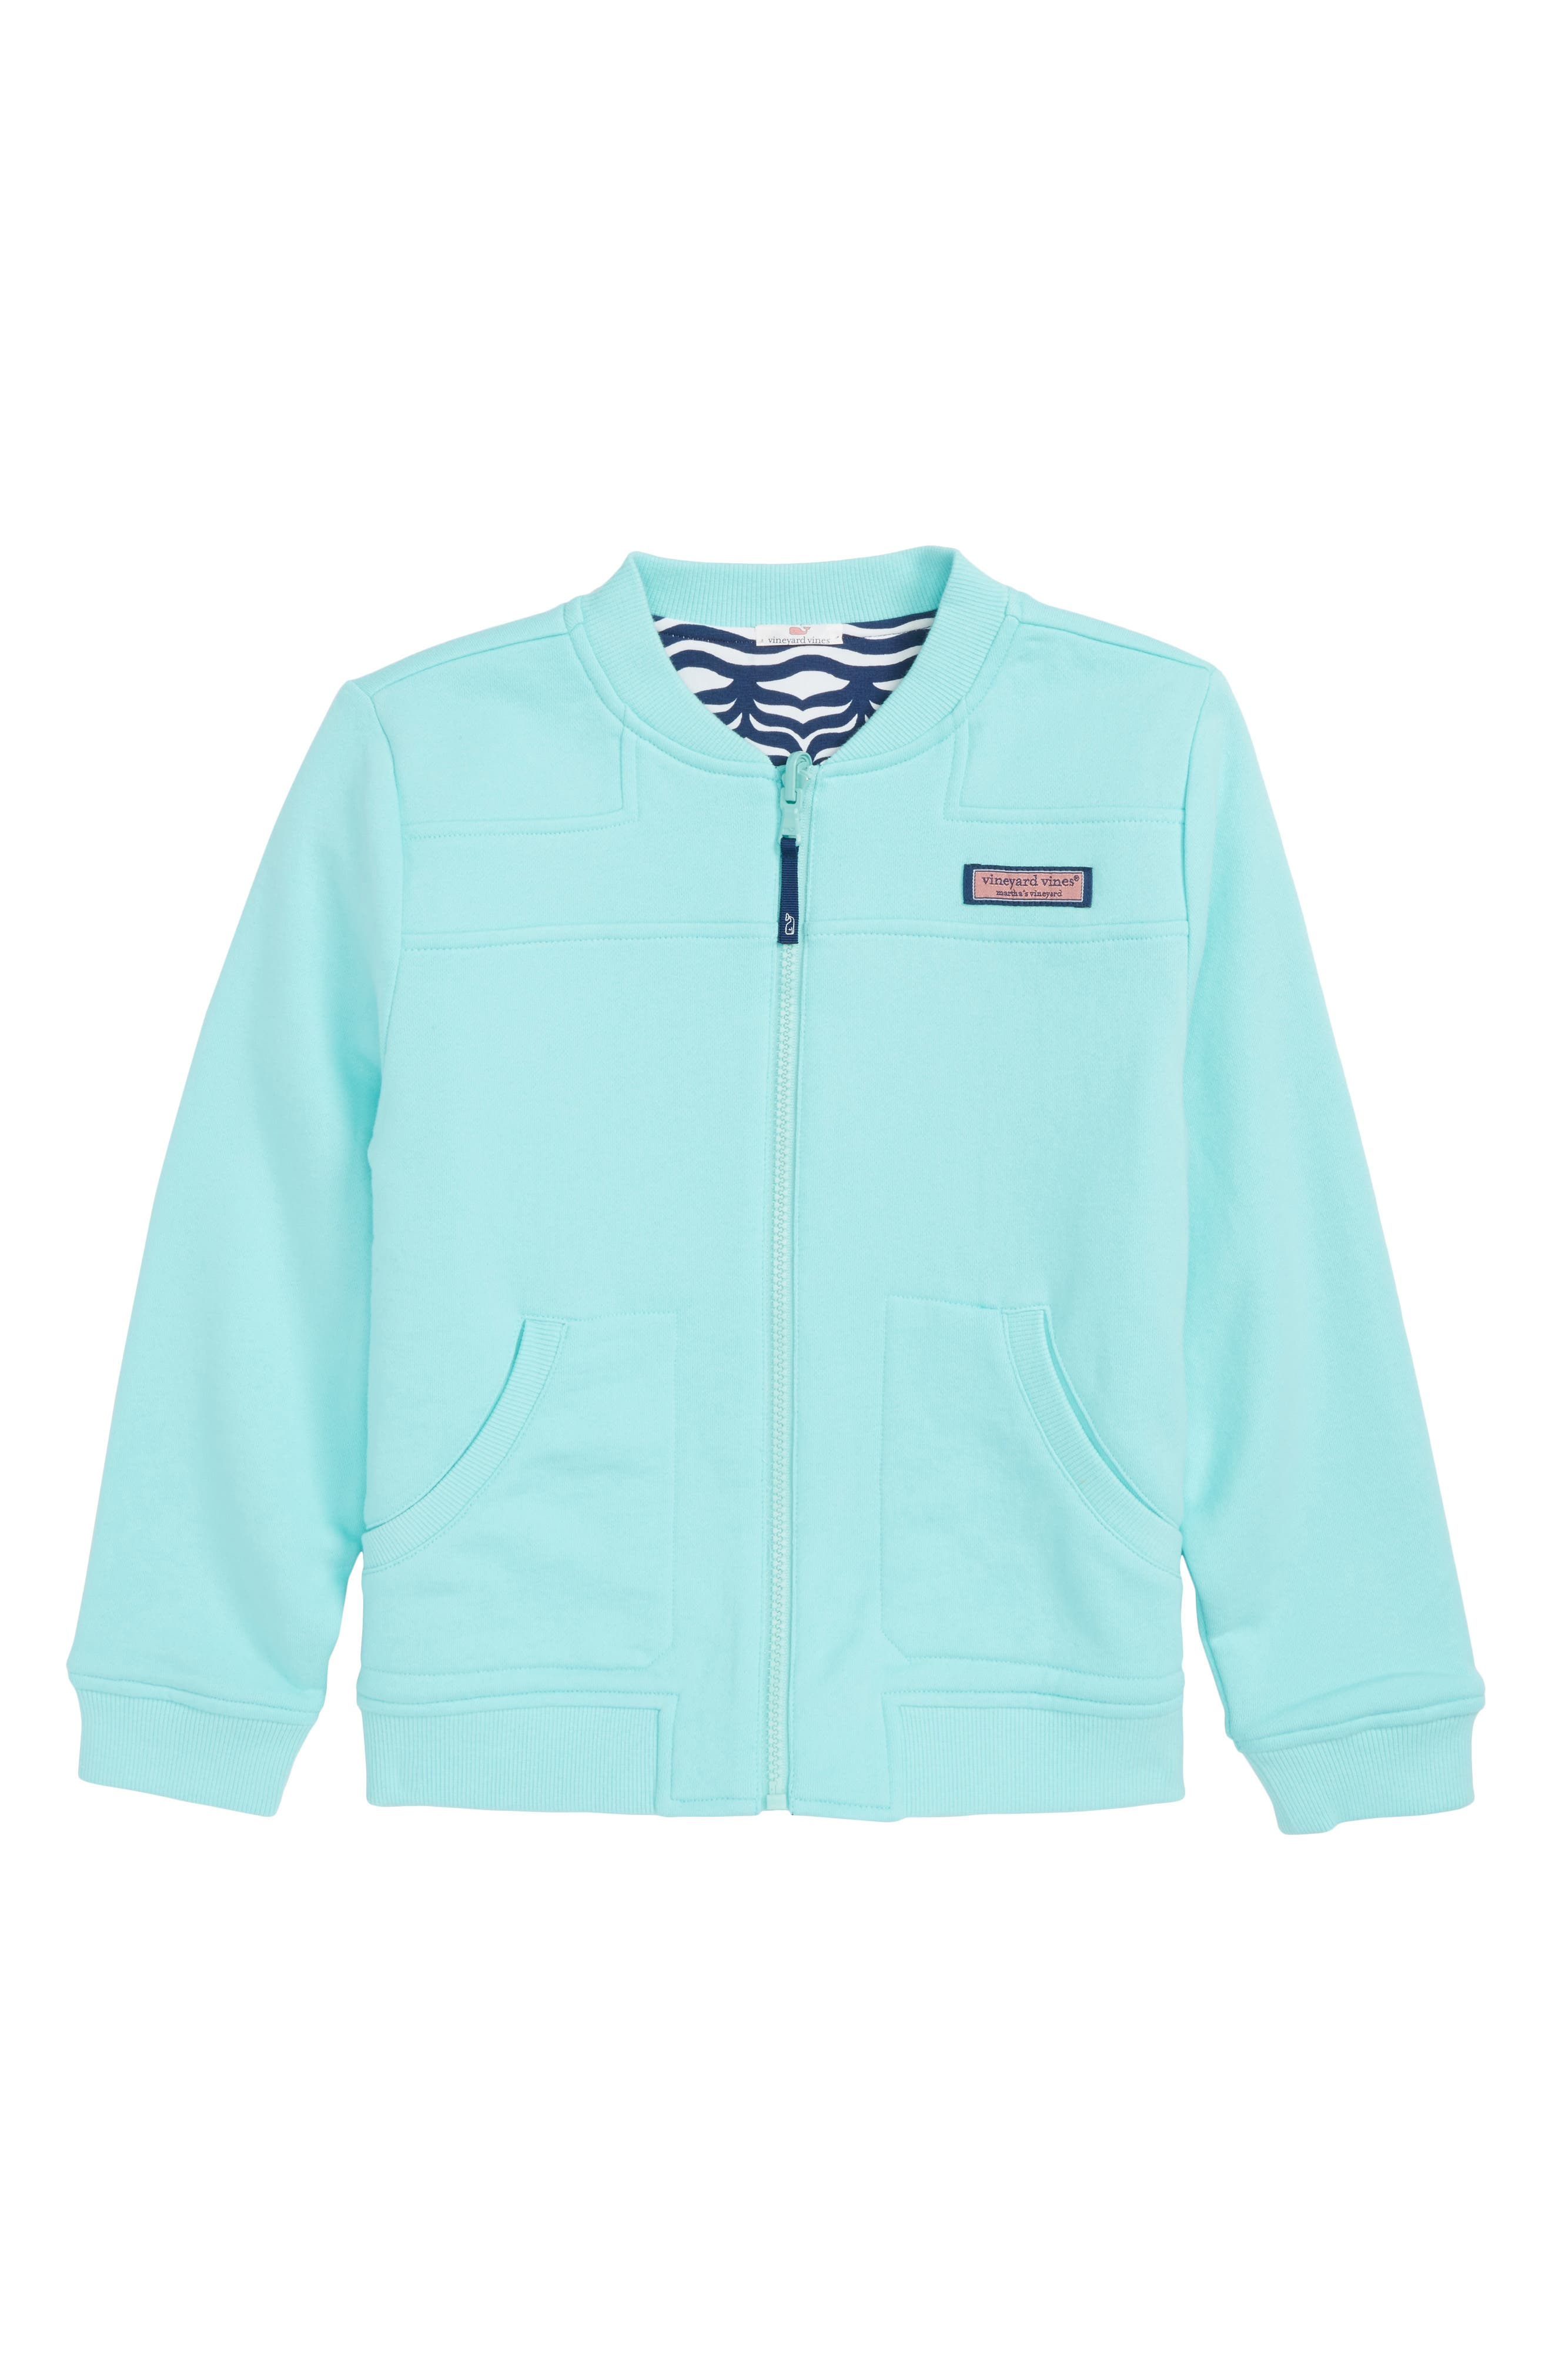 Reversible Full Zip Bomber Jacket,                         Main,                         color, Caicos